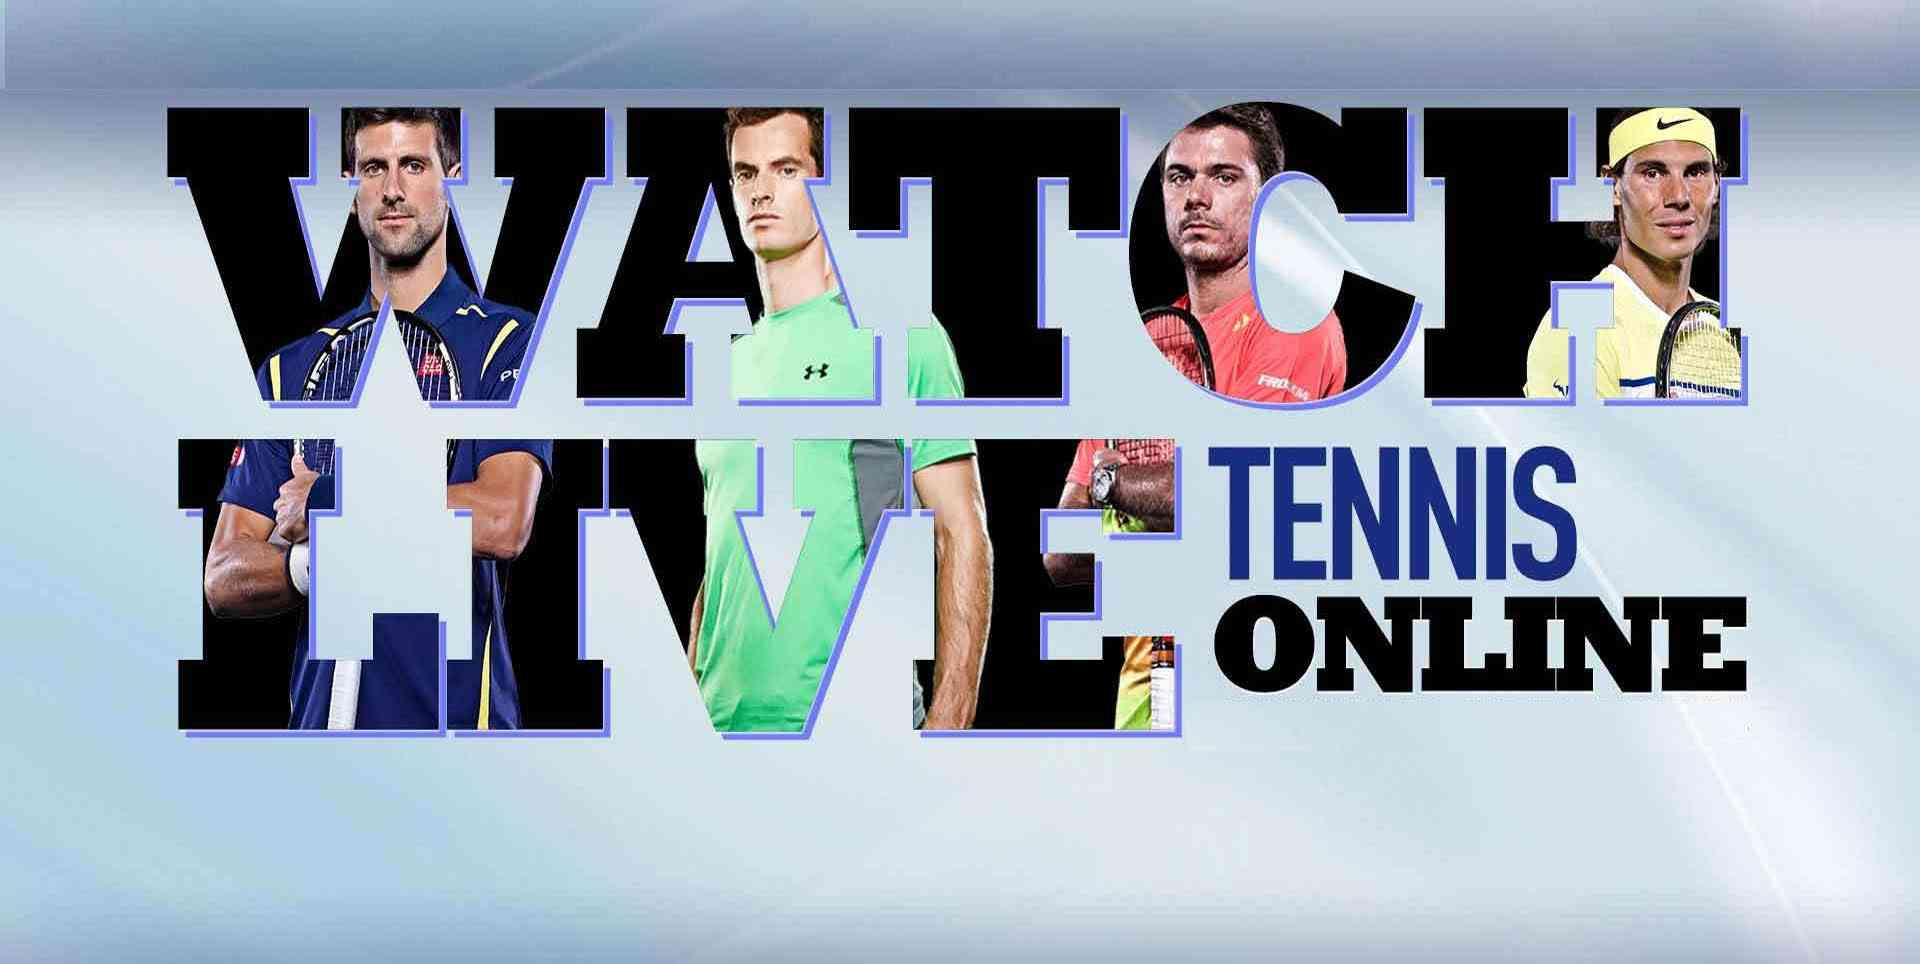 watch-2nd-round-g.-dimitrov-vs-l.-saville-online